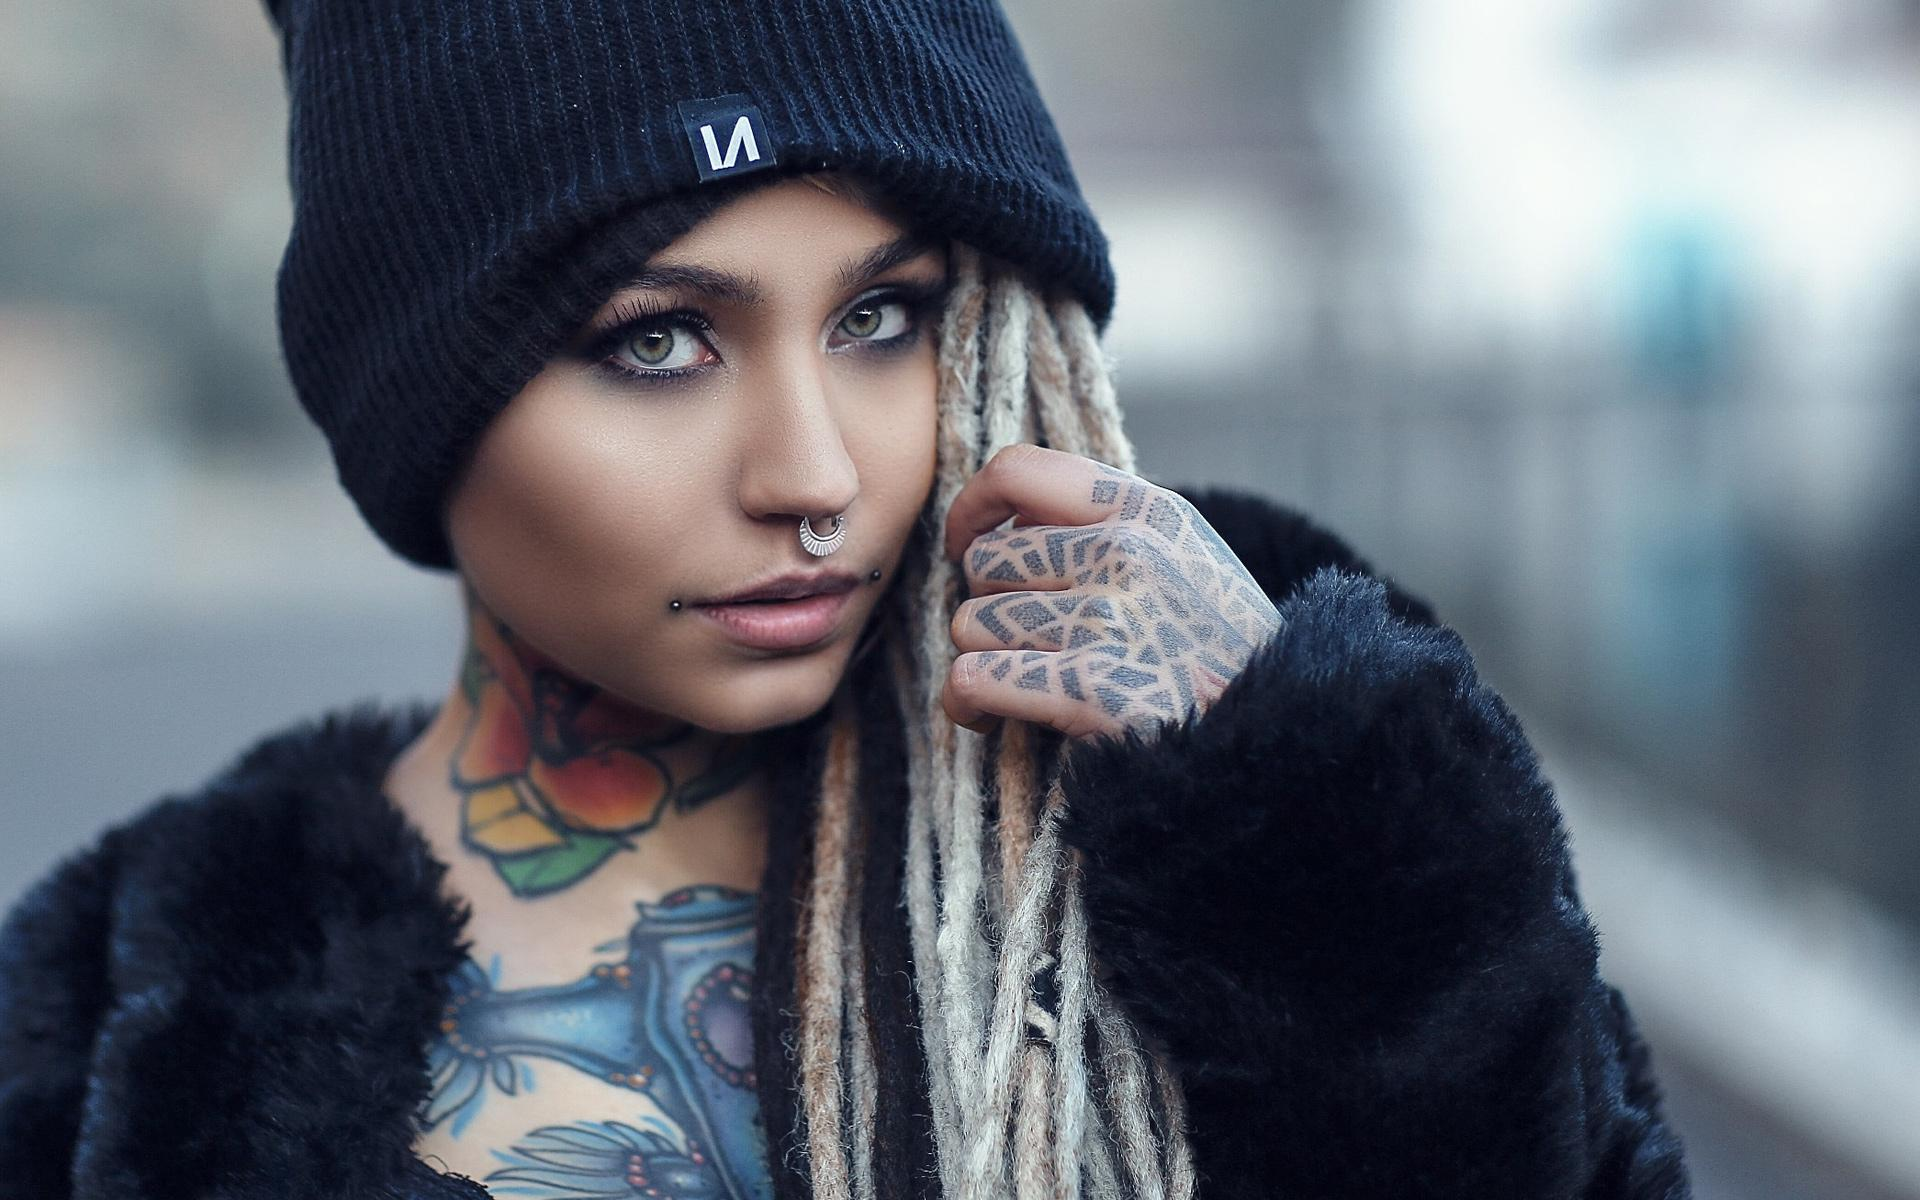 Tattoo Girl Wallpapers , Wallpaper Cave